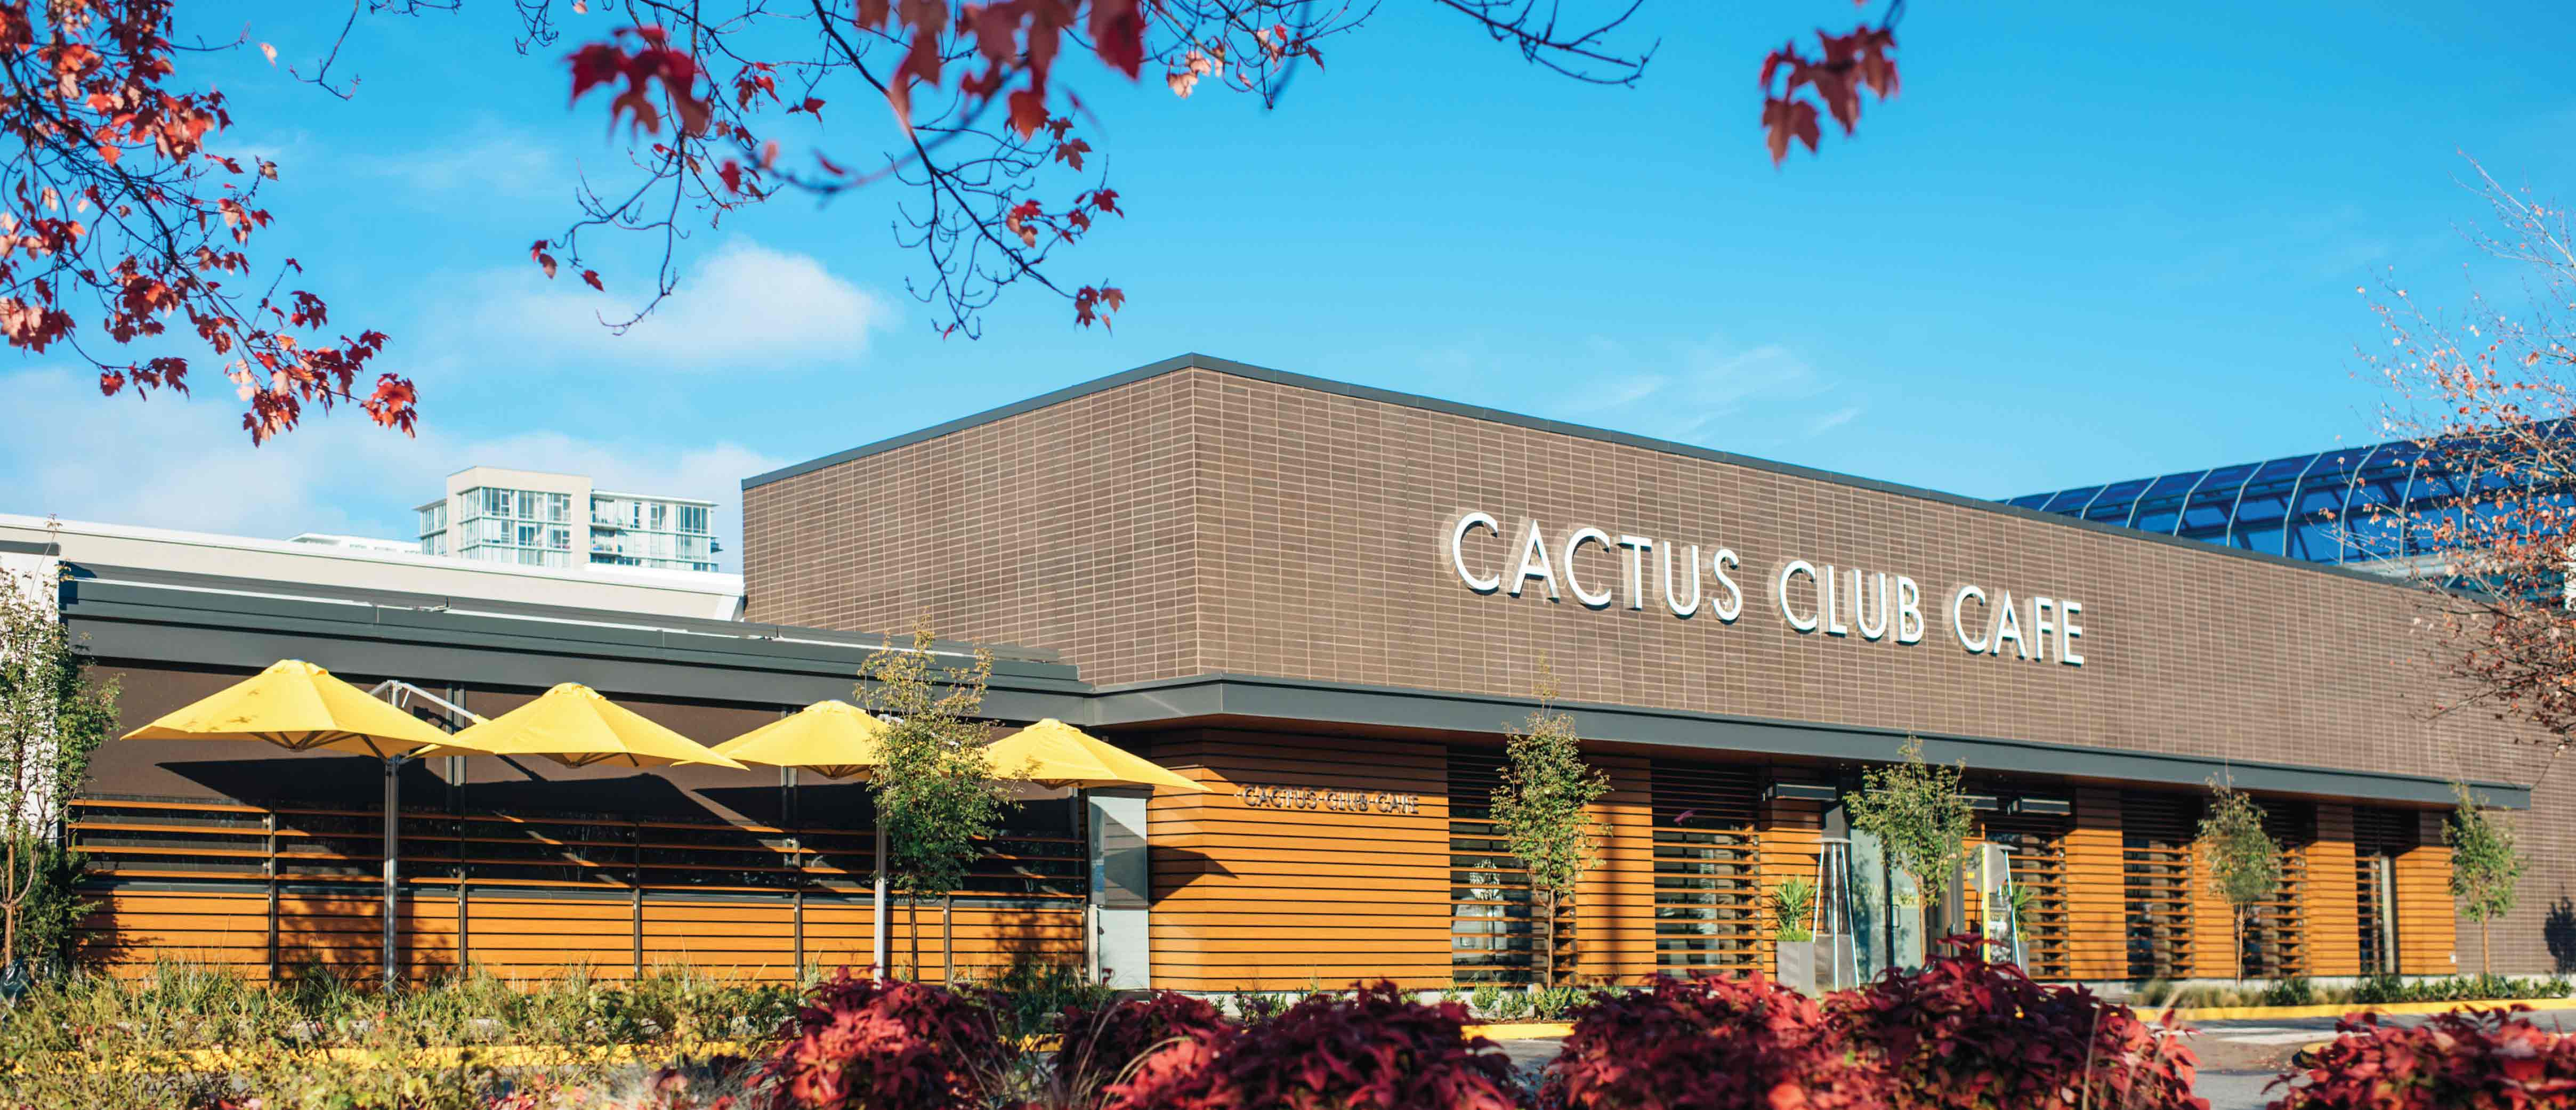 Cactus Club Cafe Richmond Centre exterior